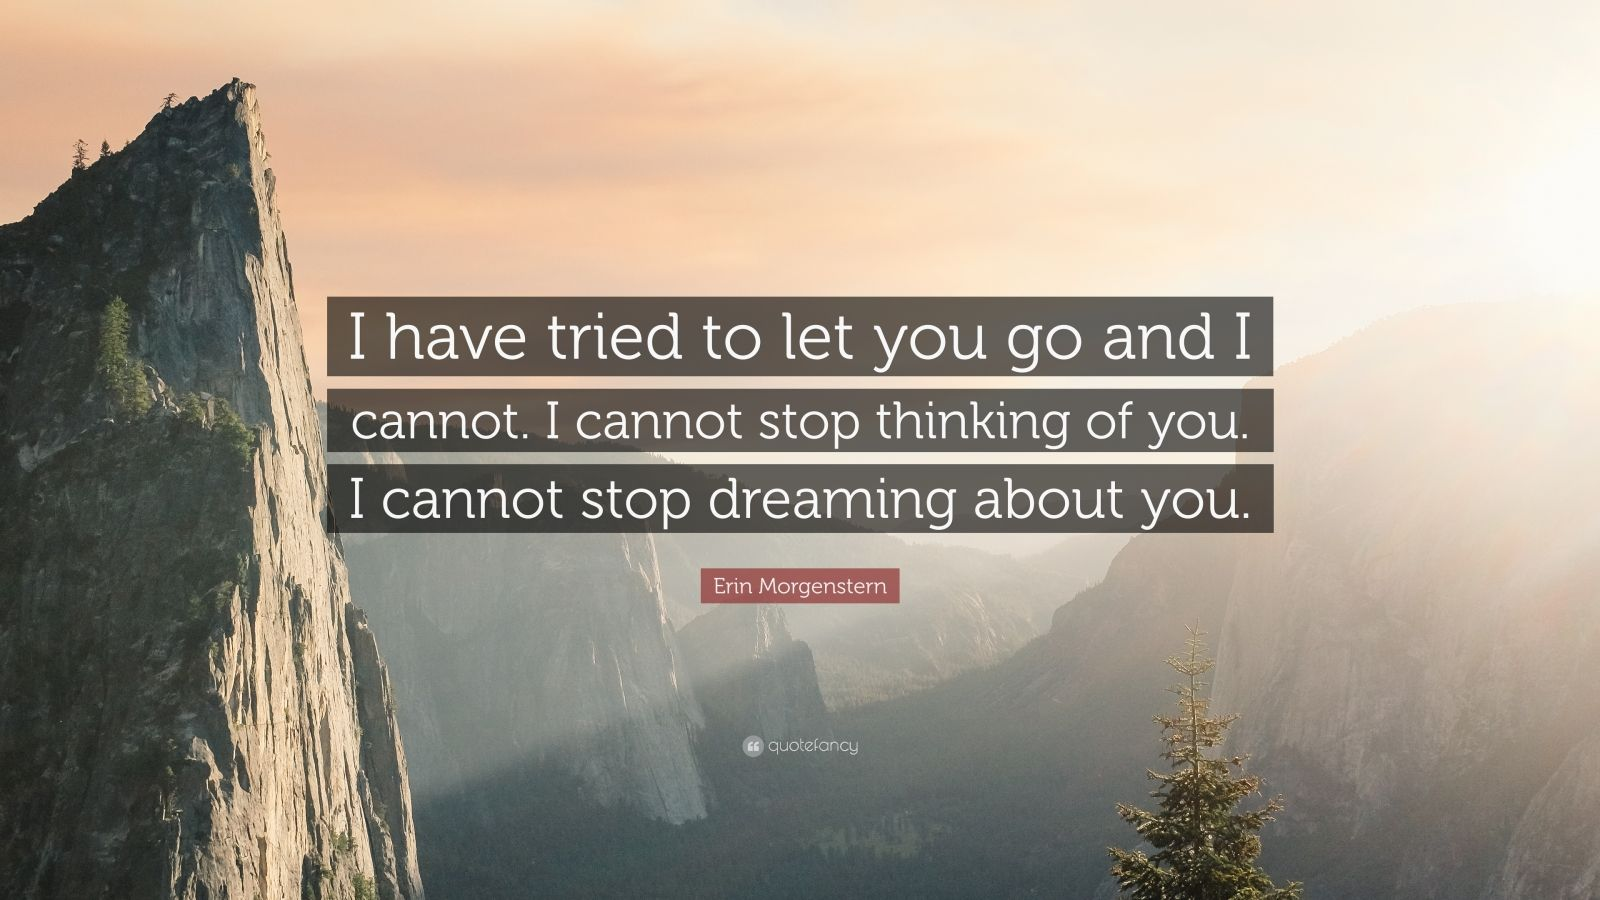 """Erin Morgenstern Quote: """"I have tried to let you go and I cannot. I cannot stop thinking of you. I cannot stop dreaming about you."""""""